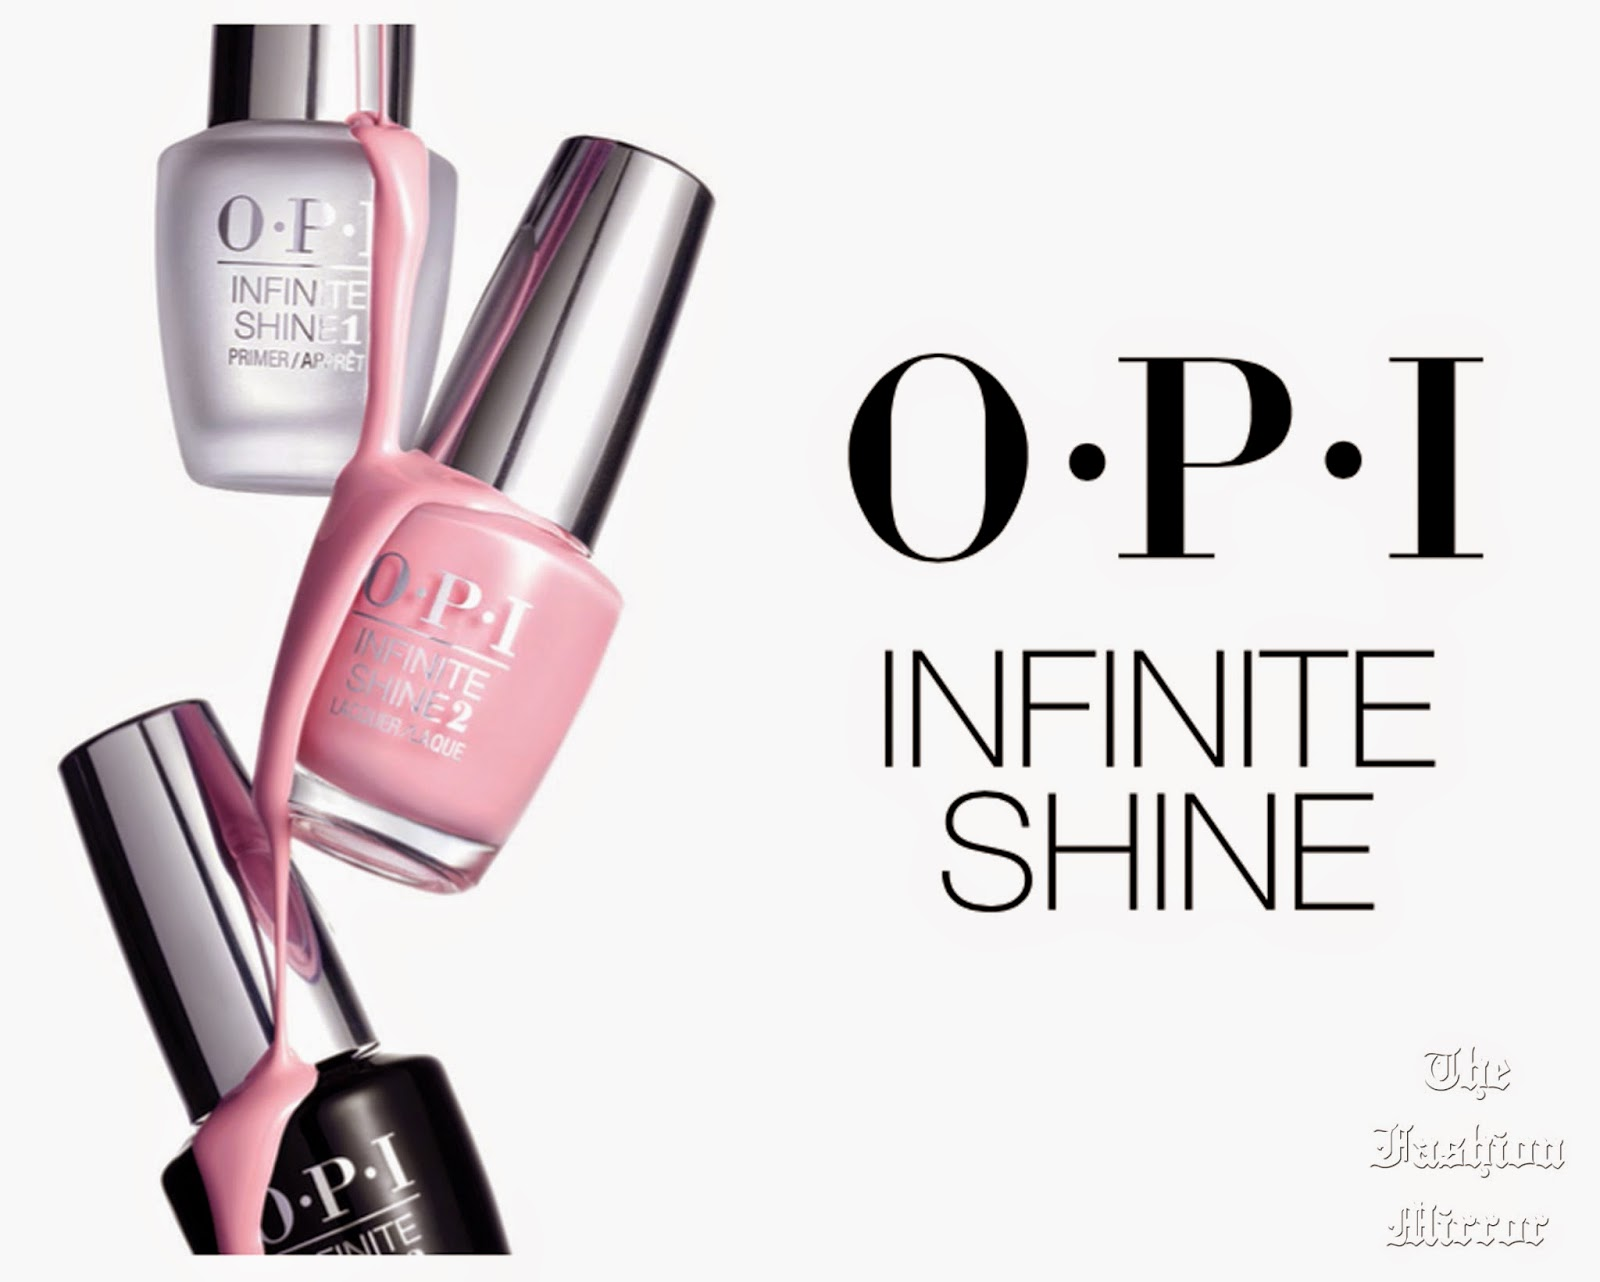 Esmalte Semipermanente Sin Lampara The Fashion Mirror Hoy Probamos Opi Infinite Shine